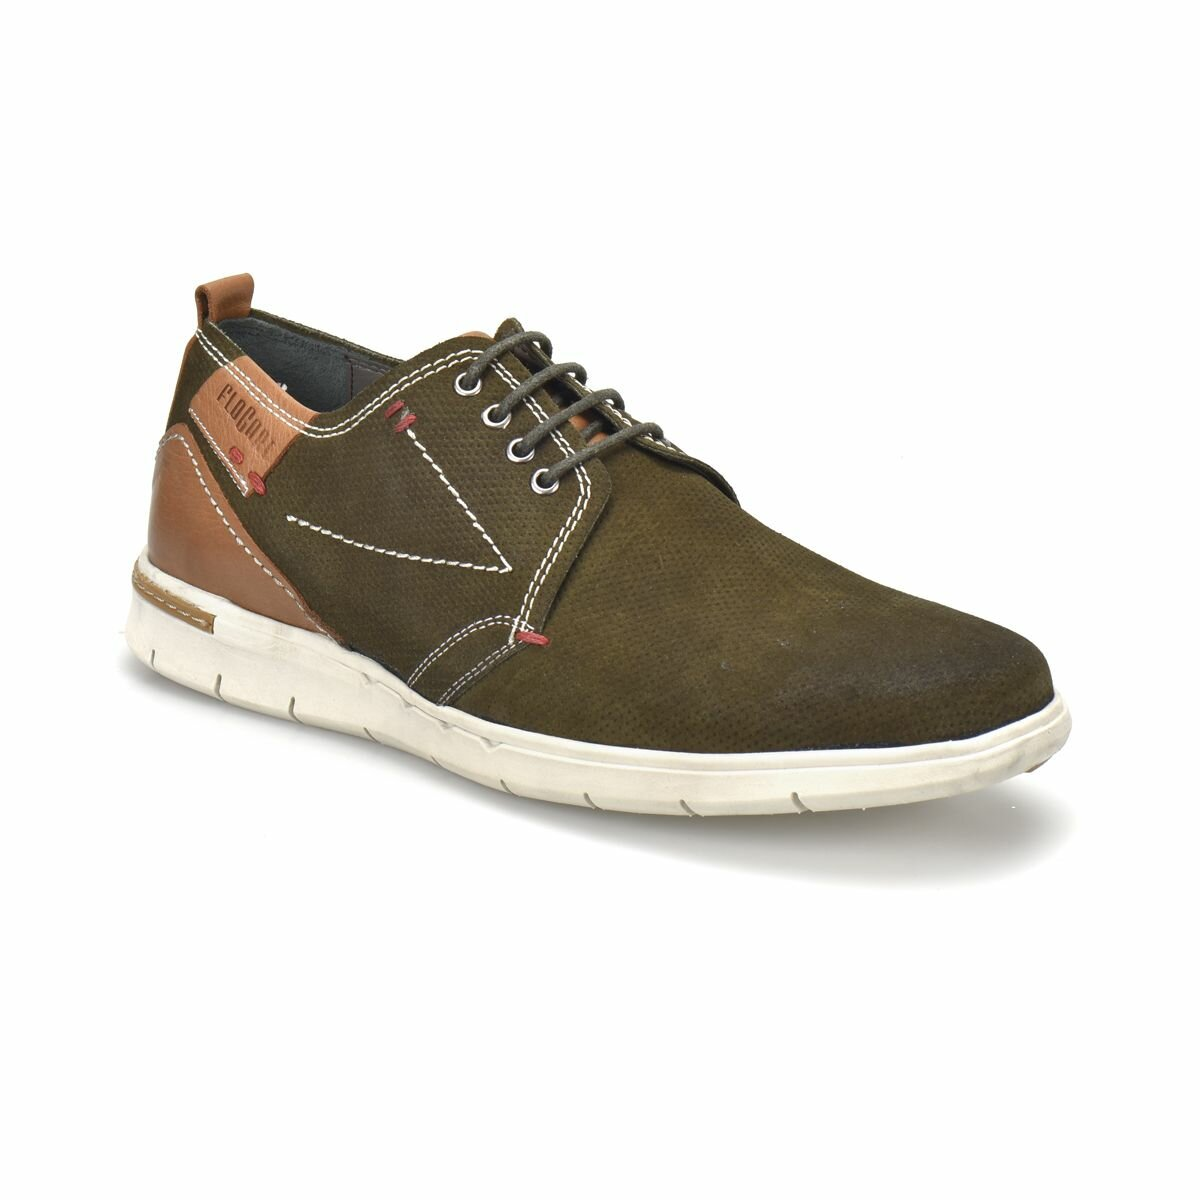 FLO Khaki Green Men's Sneakers Modern Shoes Men Flogart 321 M 1492